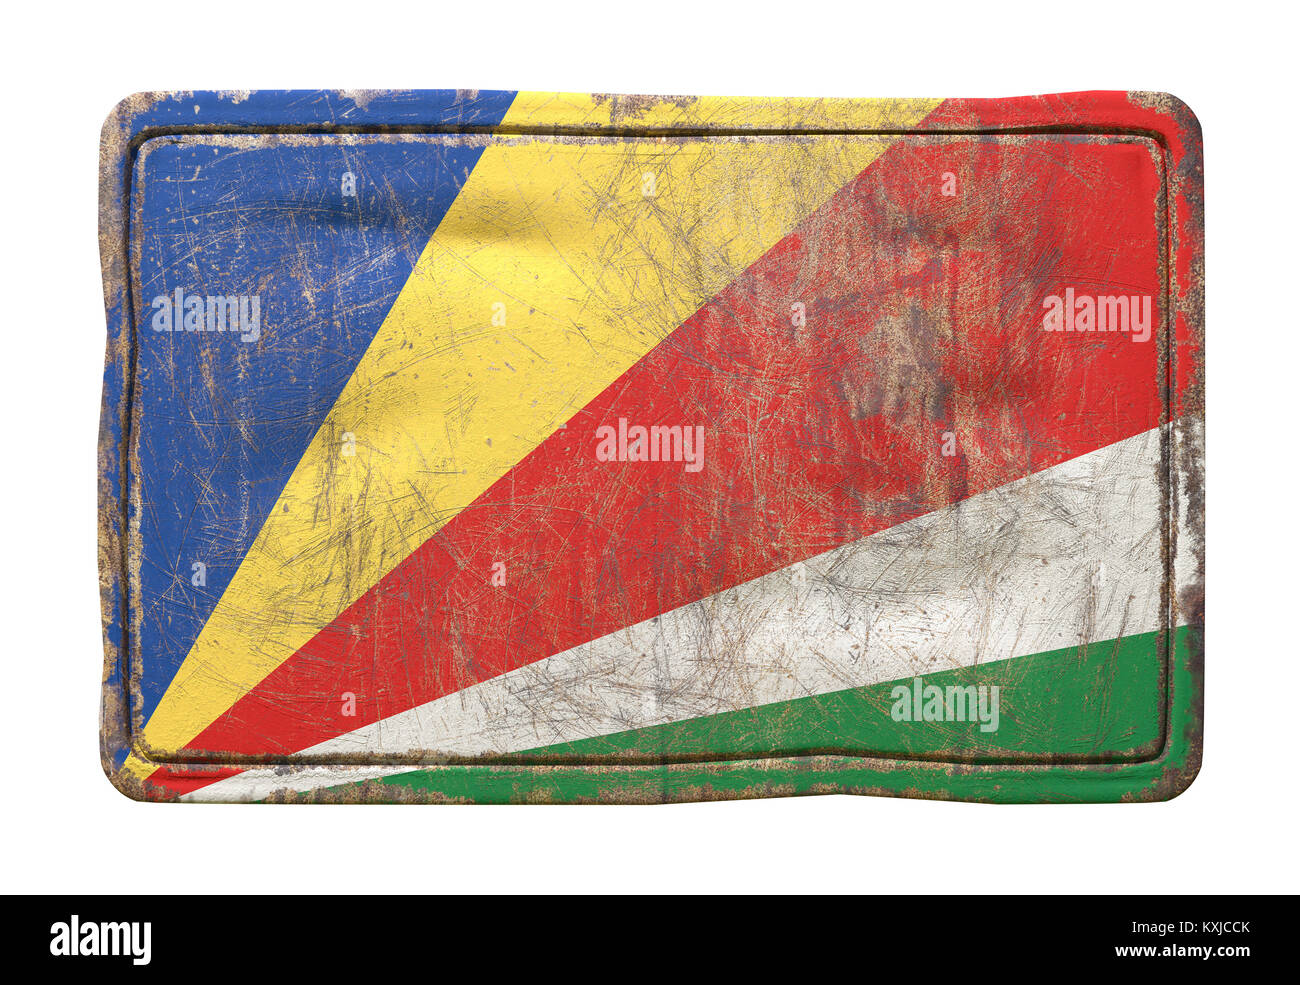 3d rendering of a Republic of Seychelles flag over a rusty metallic plate. Isolated on white background. - Stock Image